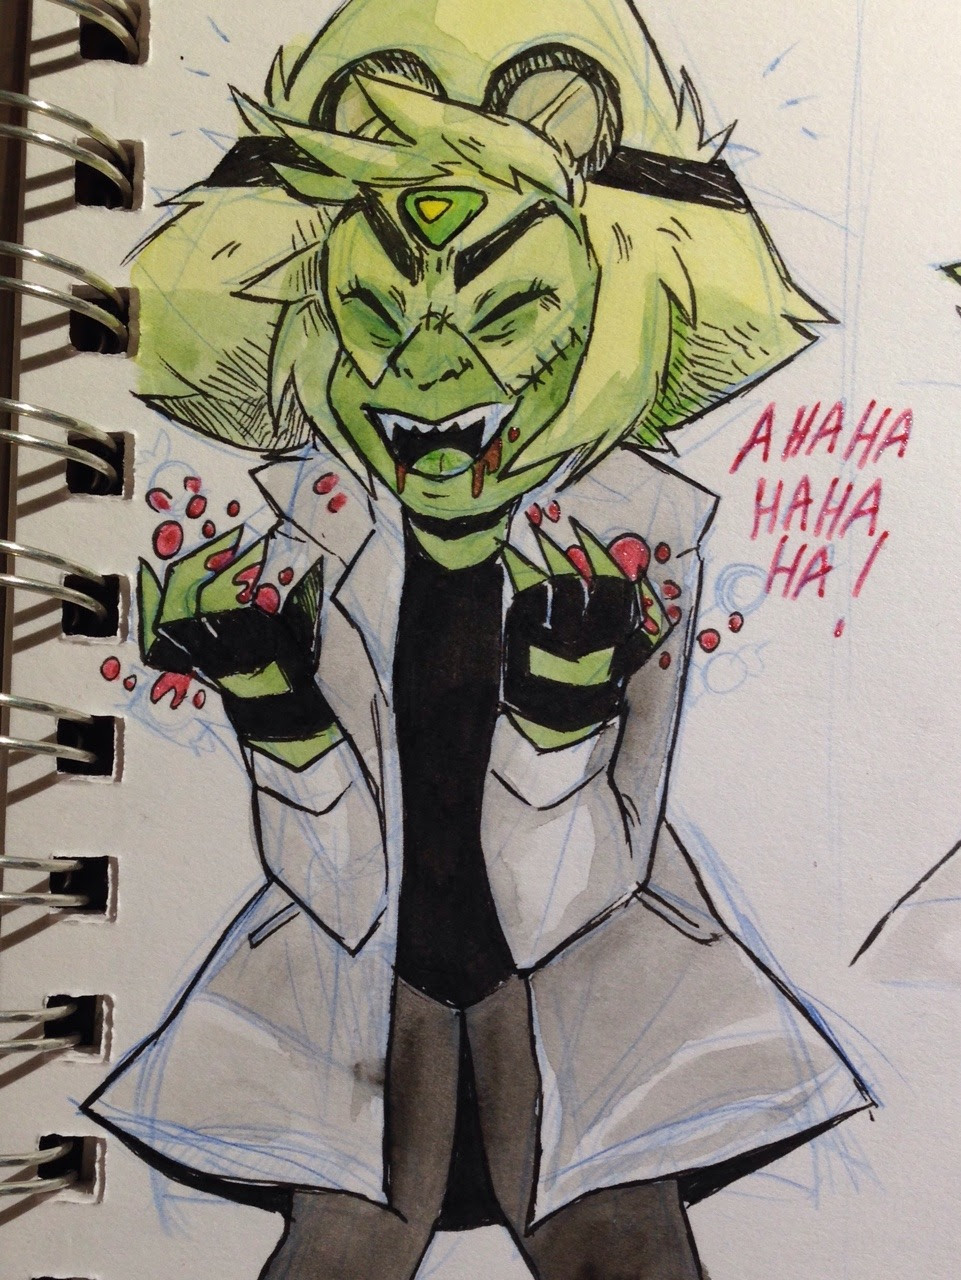 halloween party shenanigans: peridot dresses as a mad scientist, eats too much candy, has a sugar high and crashes. jaspers designated to take care of her.